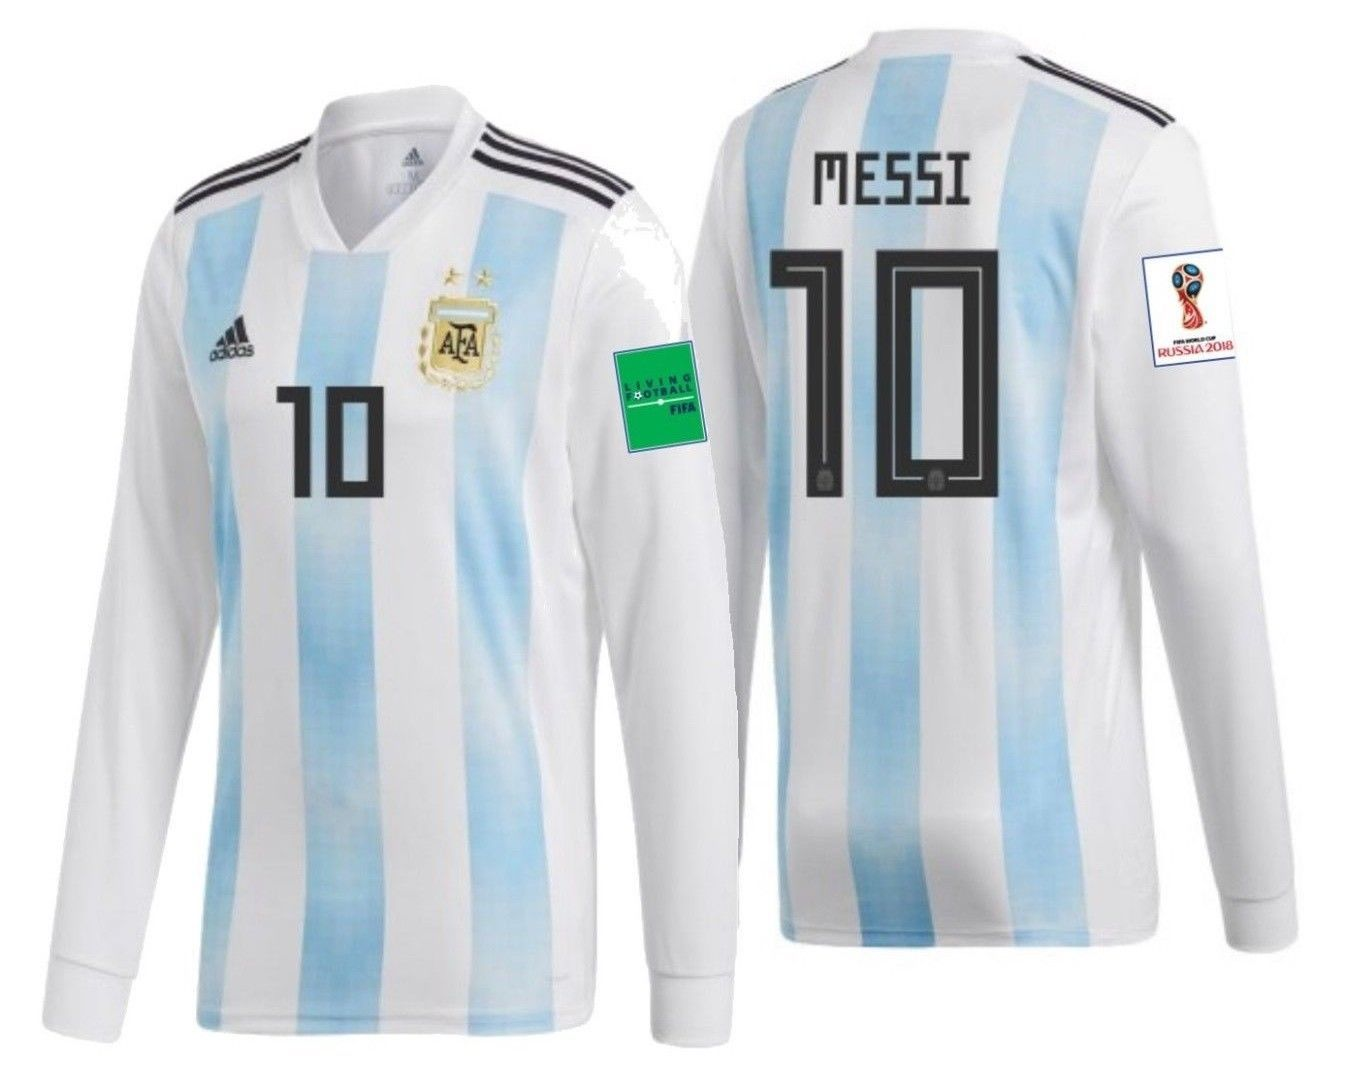 6ba5d825b33 57. 57. Previous. ADIDAS LIONEL MESSI ARGENTINA LONG SLEEVE HOME JERSEY  FIFA WORLD CUP ...